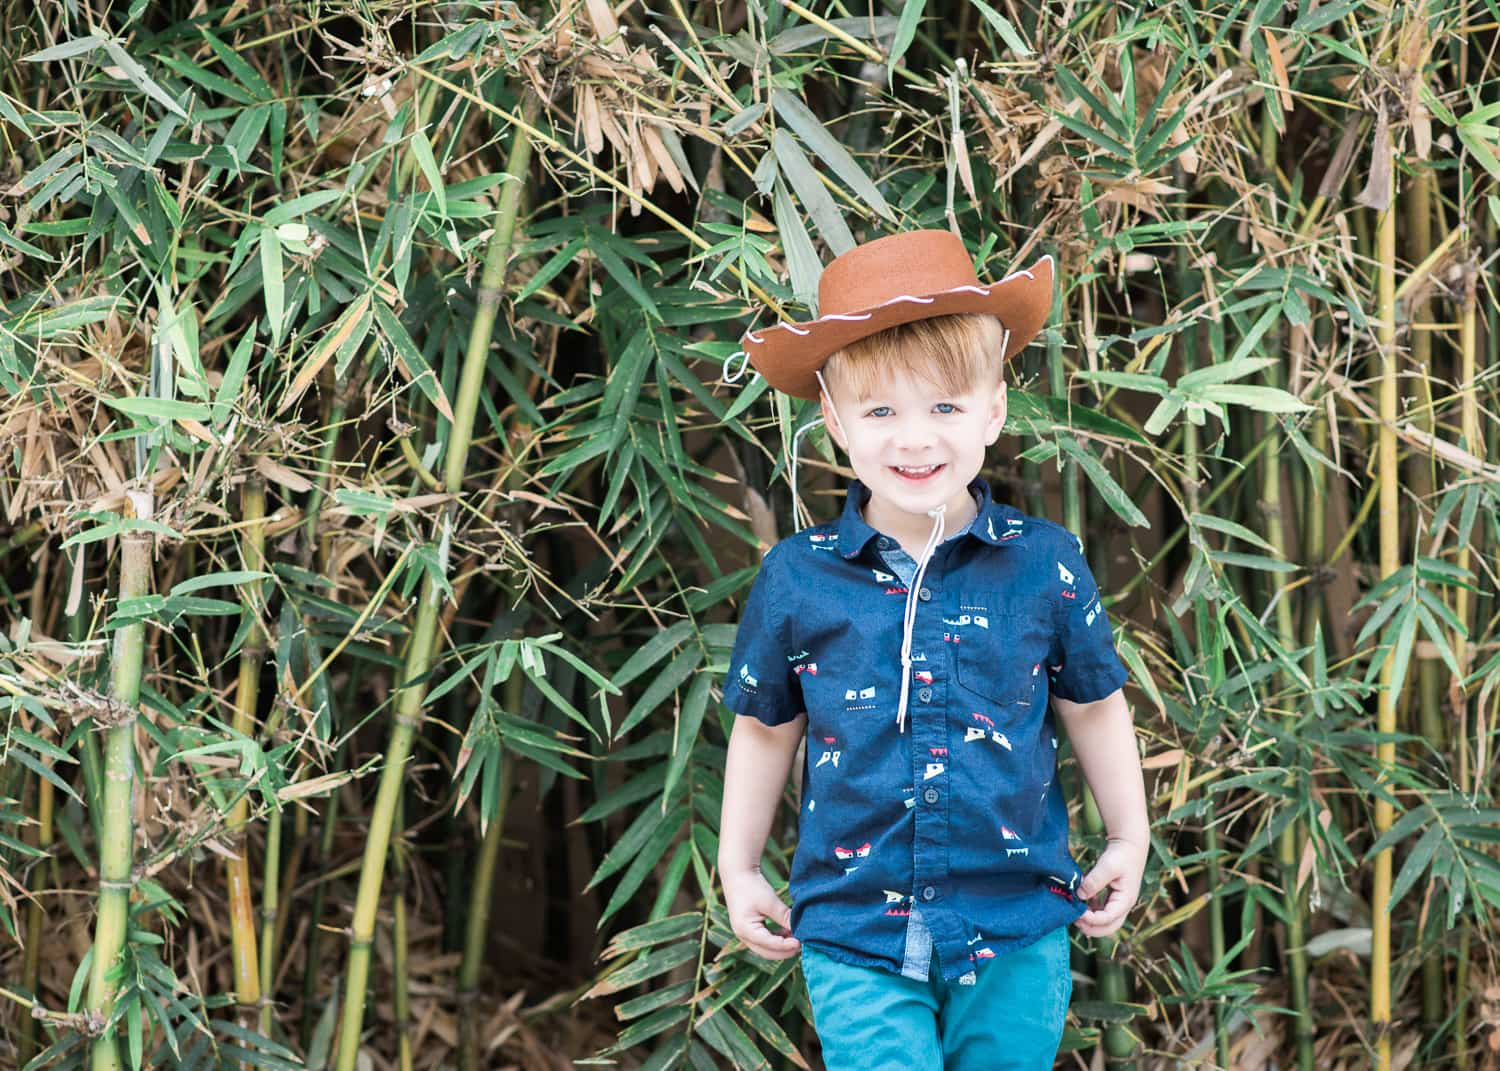 Candid portrait of boy in hat.